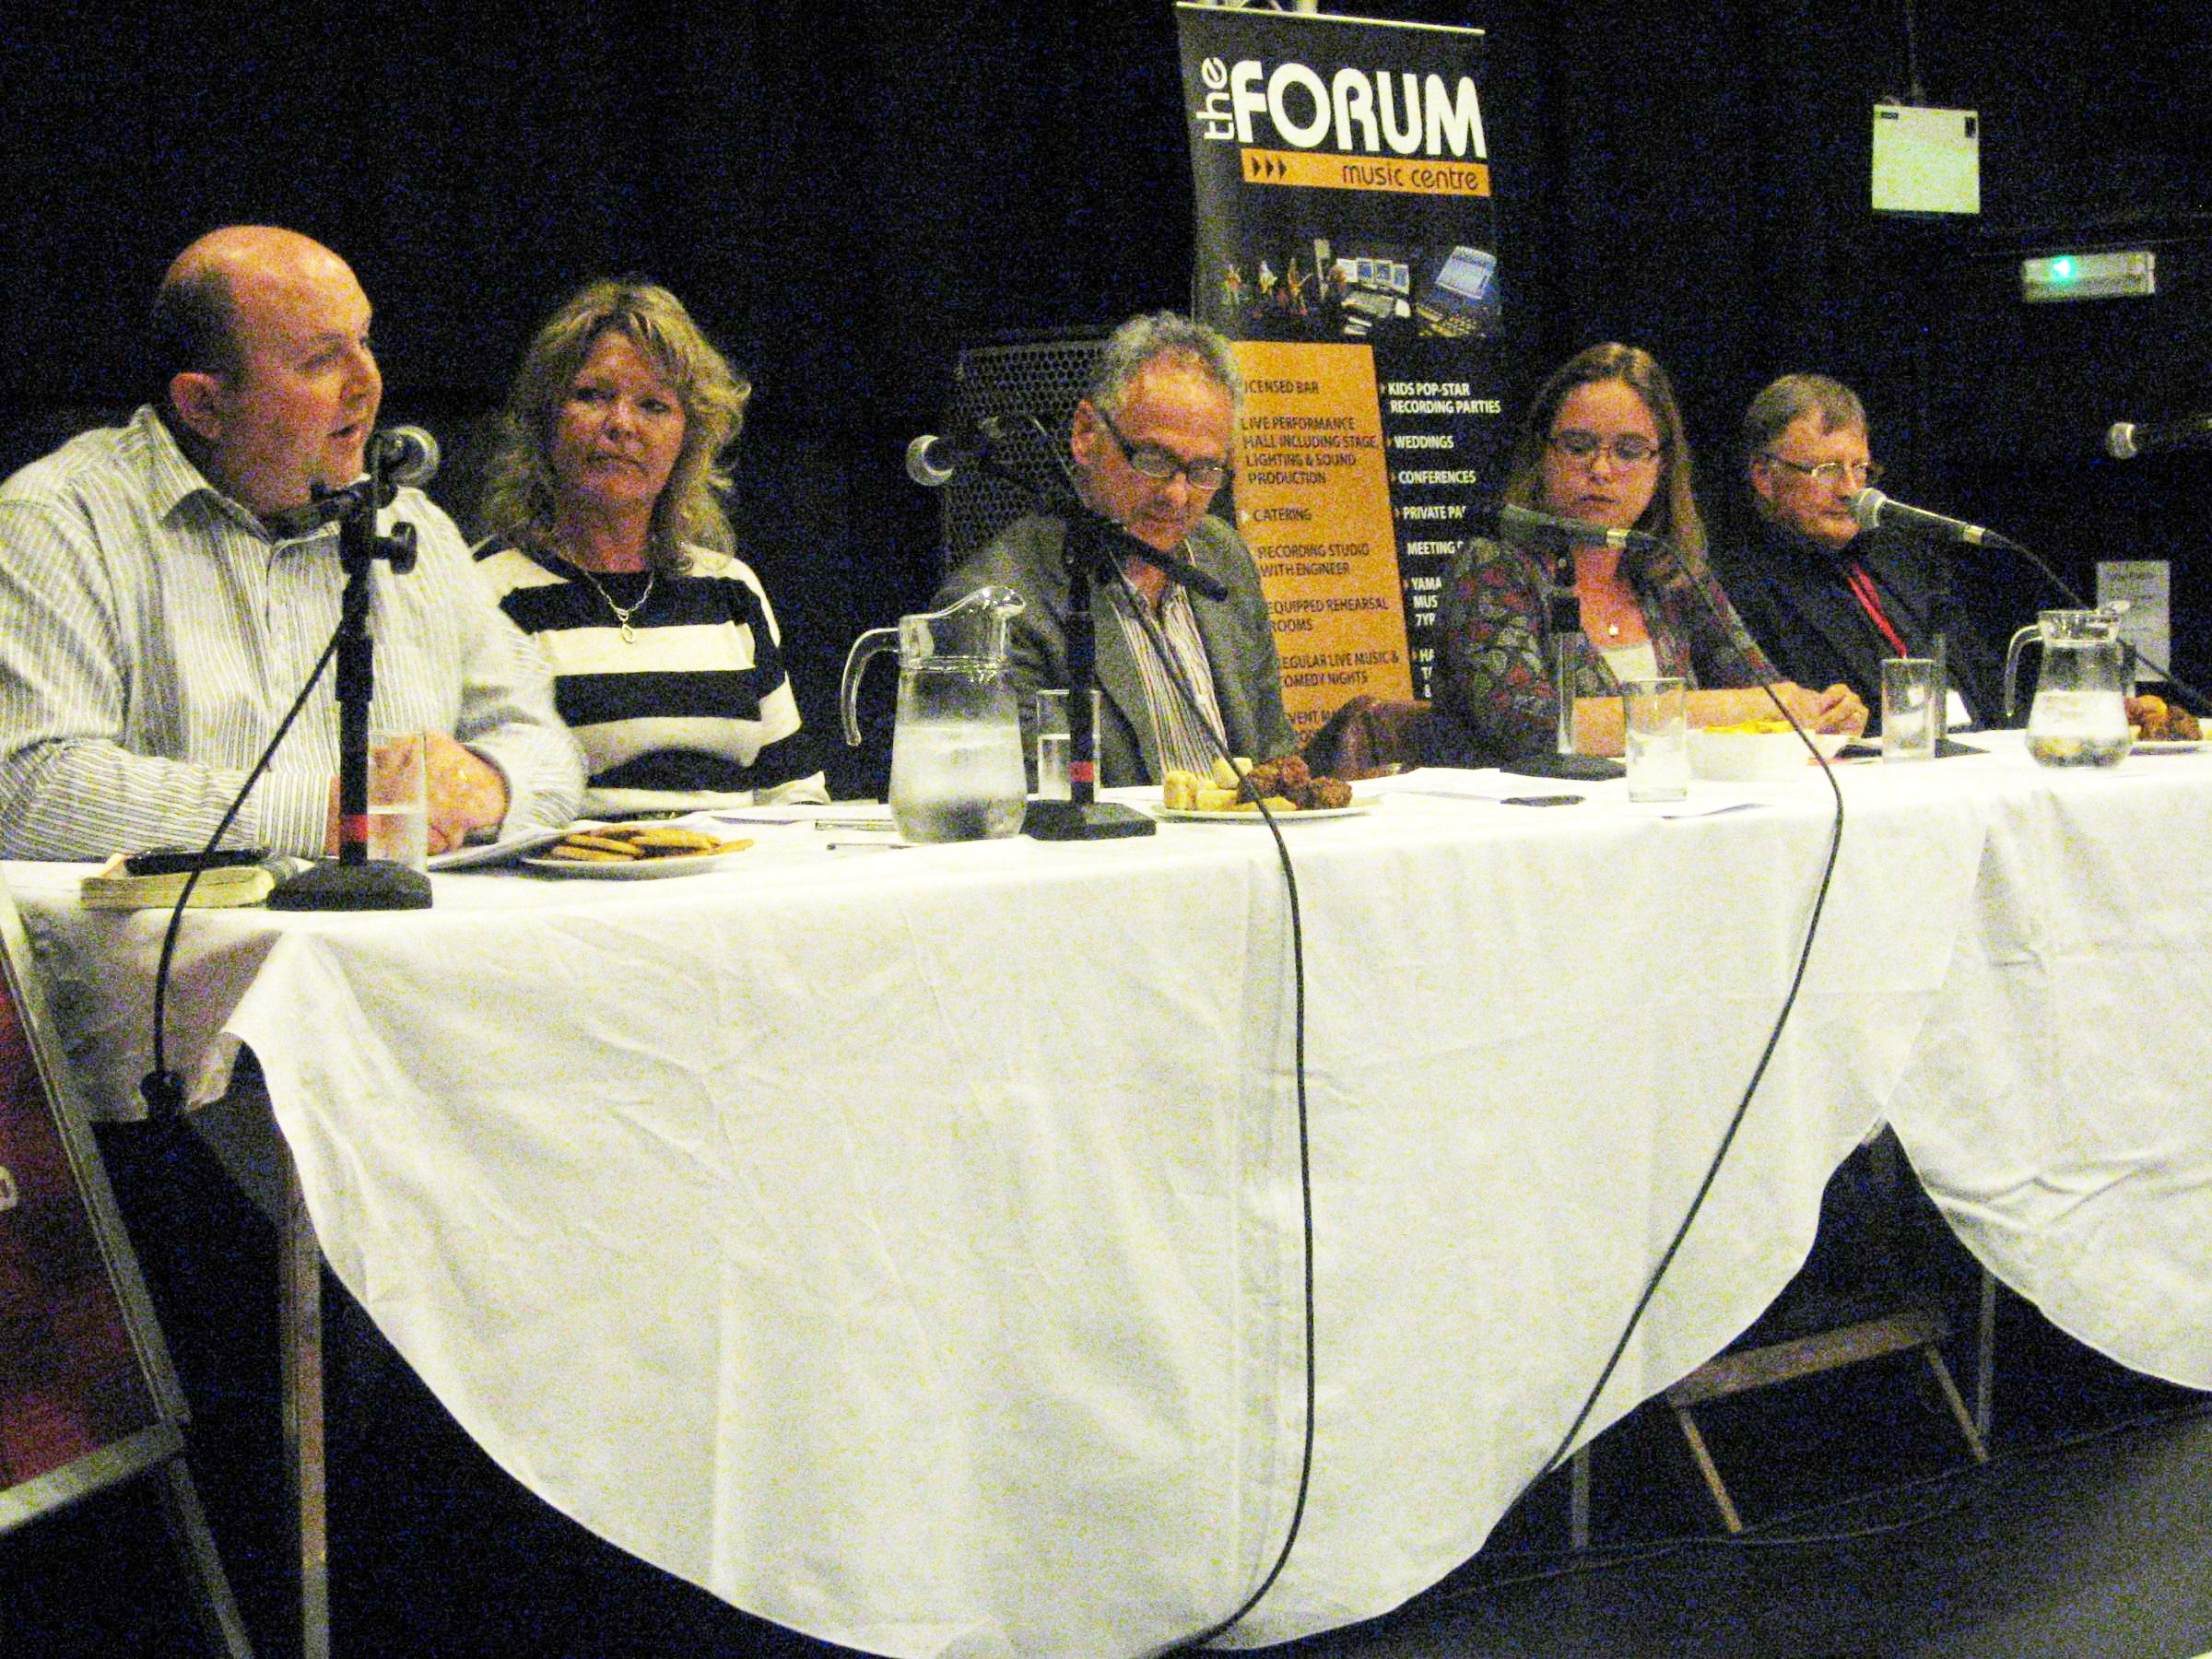 ARTS PANEL: From left: Cllr Nick Wallis, Allison McKay, Peter Barron, Miranda Thai